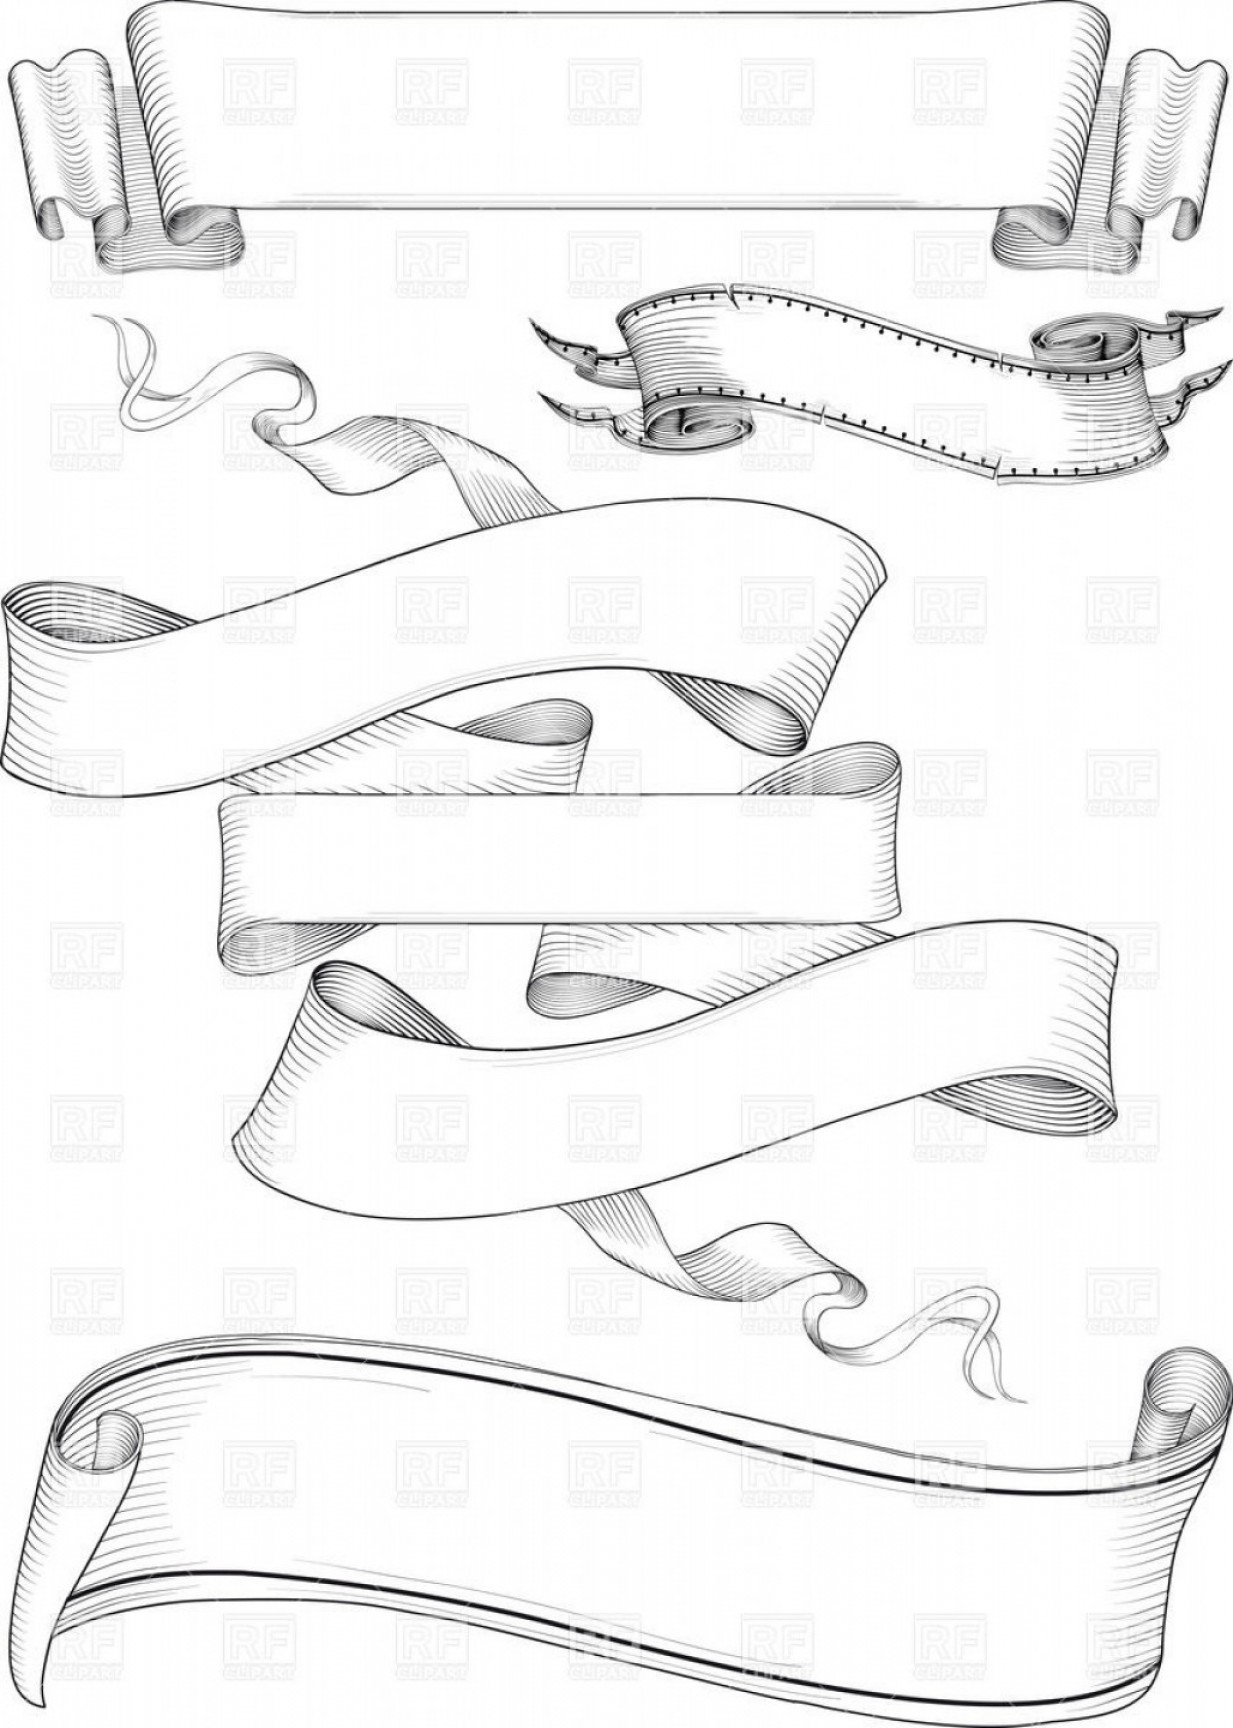 Ribbion Banner Vector: Ribbon Banners In Engraving Style Vector Clipart